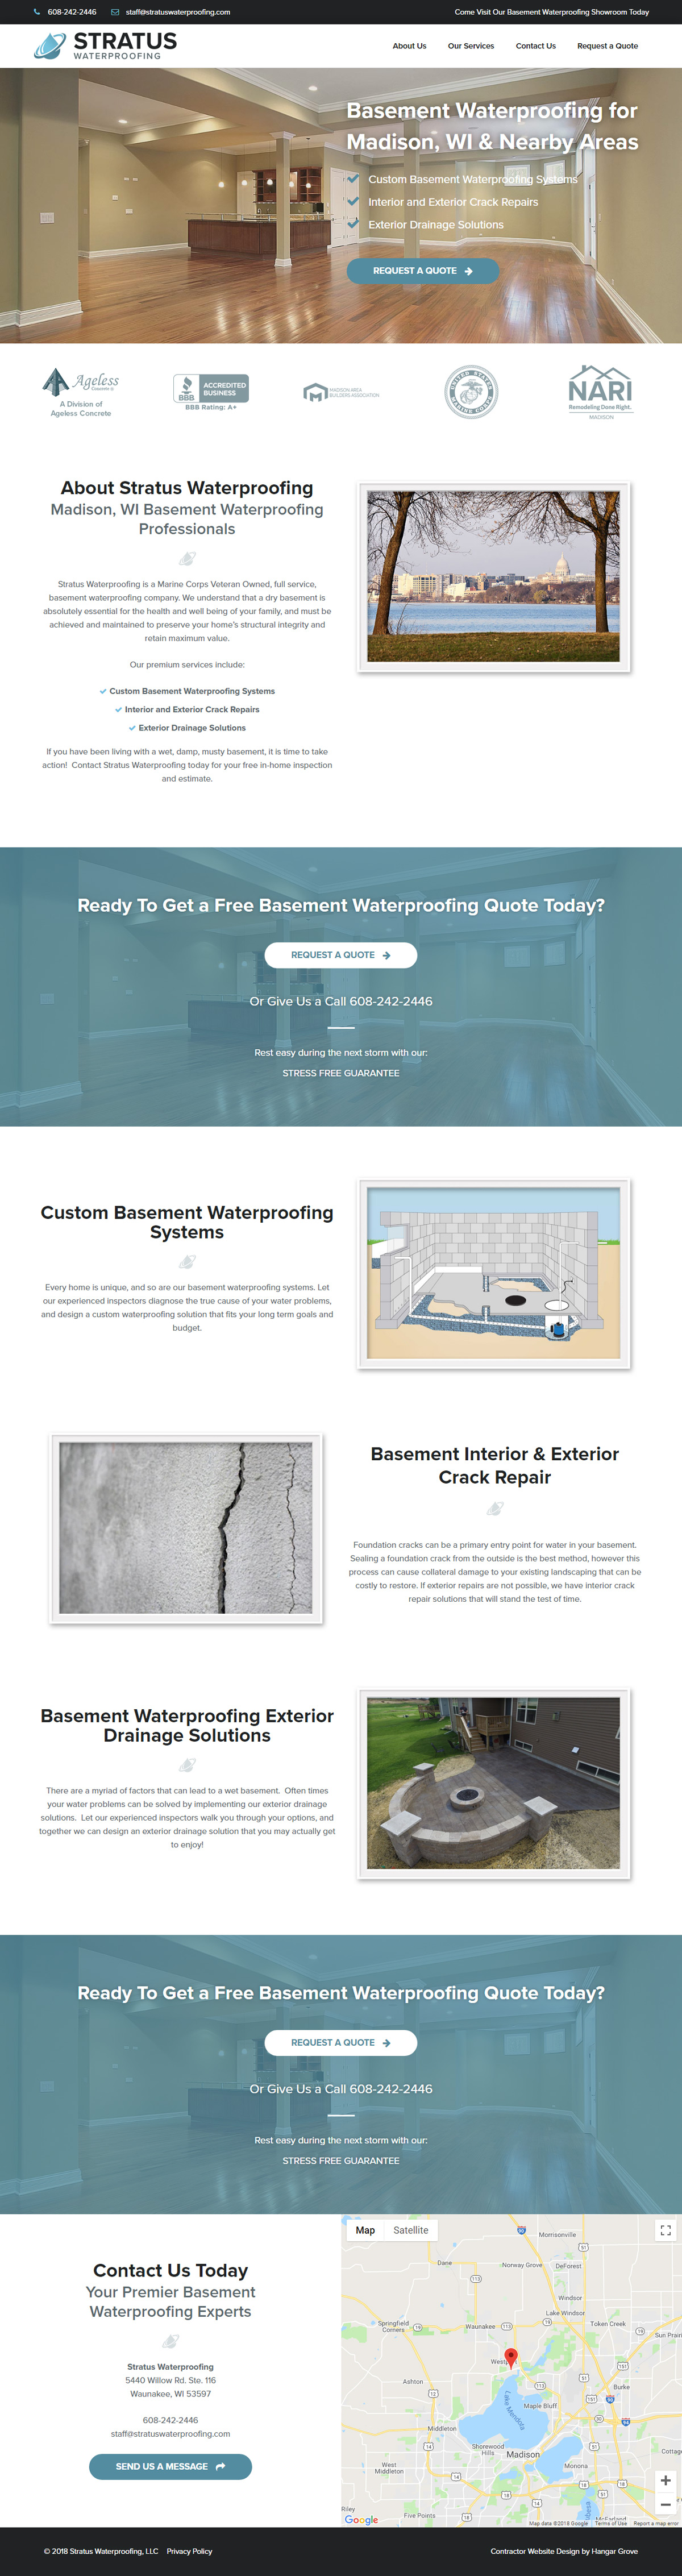 Stratus Waterproofing Case Study Homepage